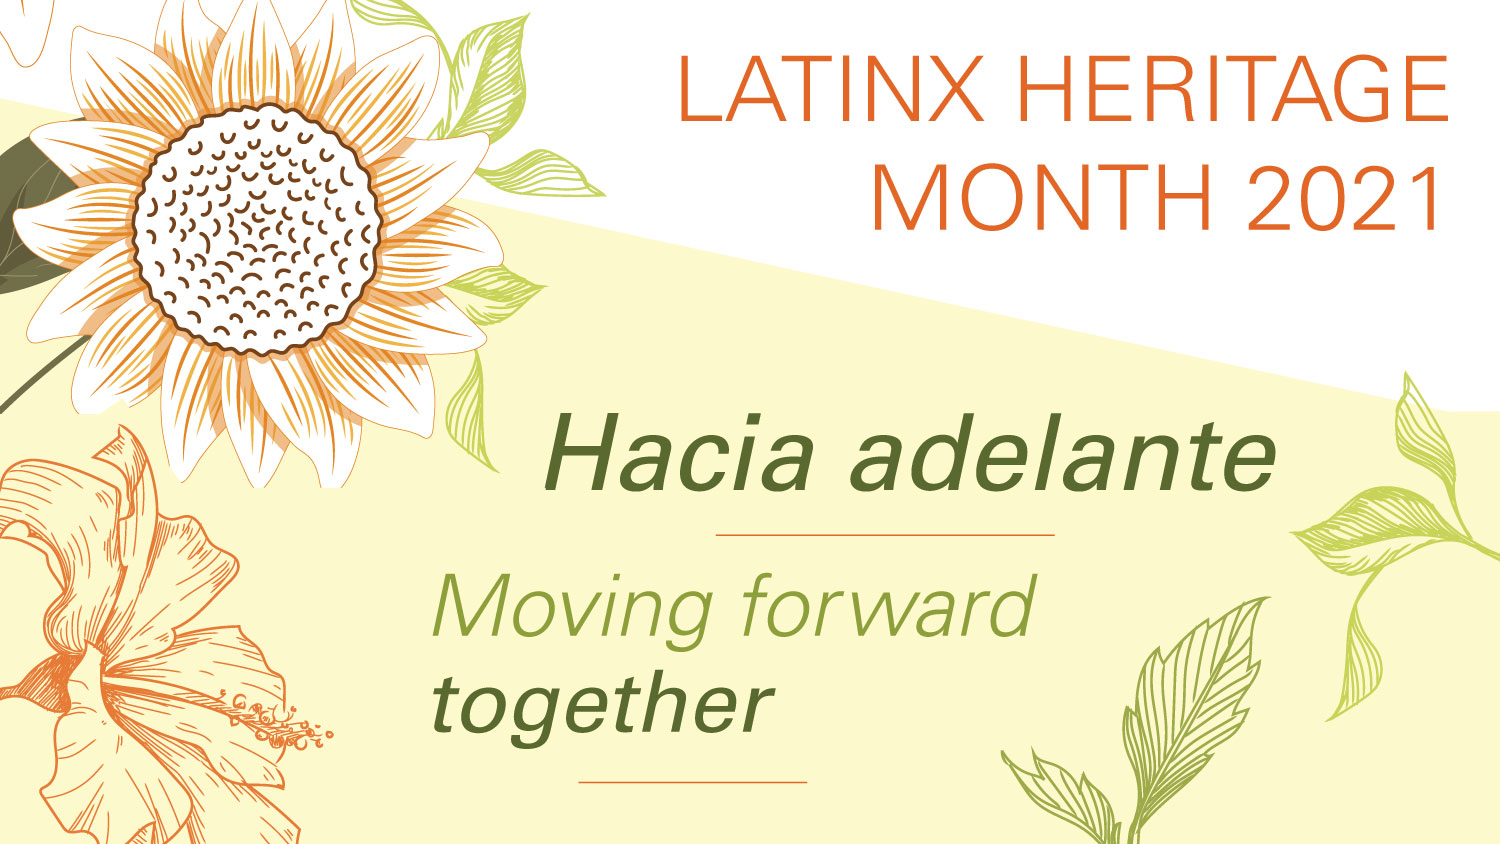 Flyer for Latinx Heritage Month